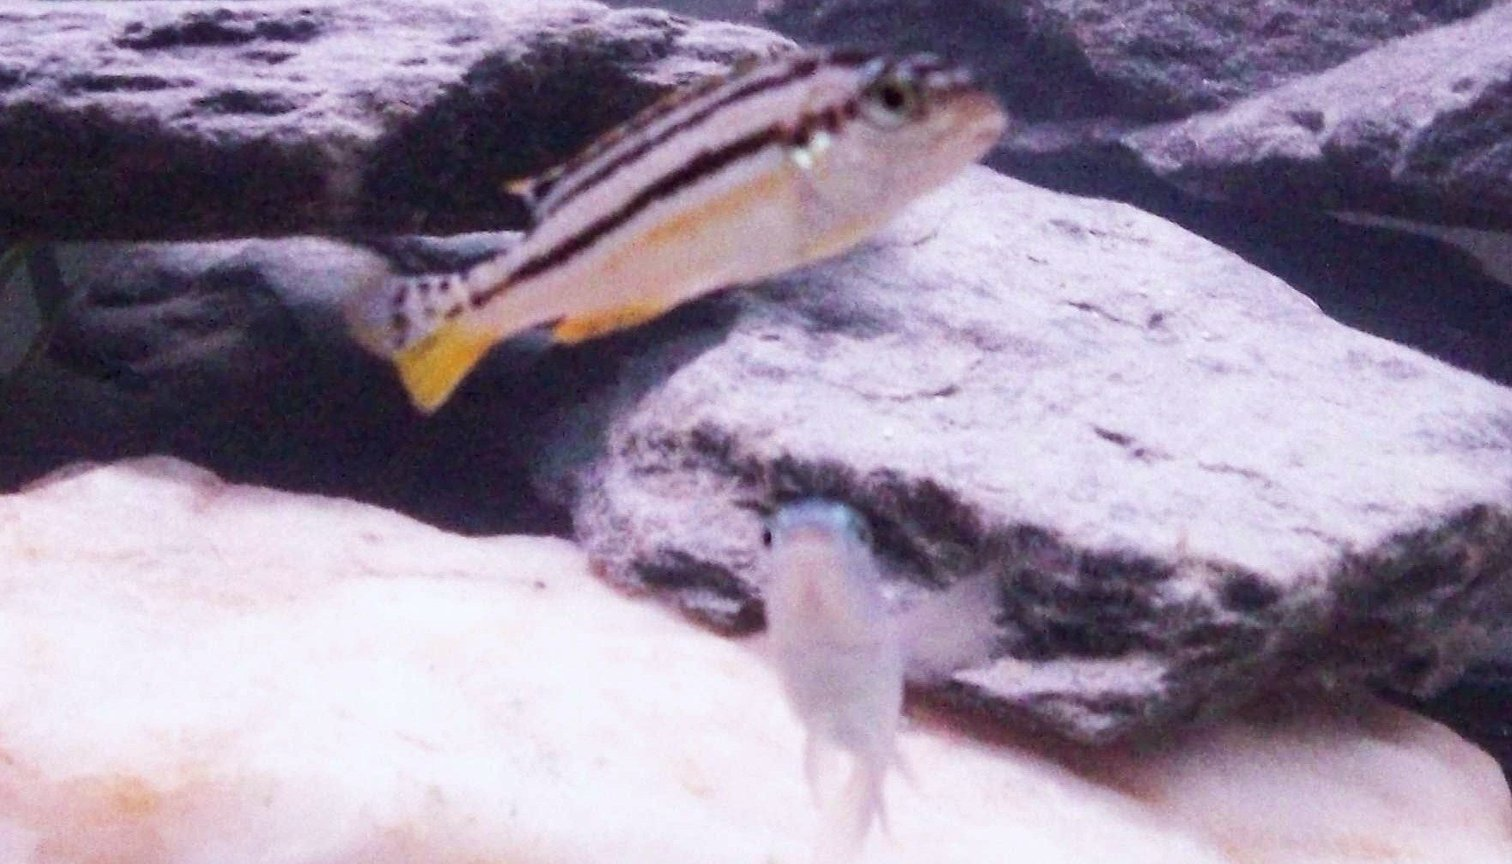 freshwater fish - melanochromis auratus - auratus cichlid stocking in 55 gallons tank - my female golden malawi